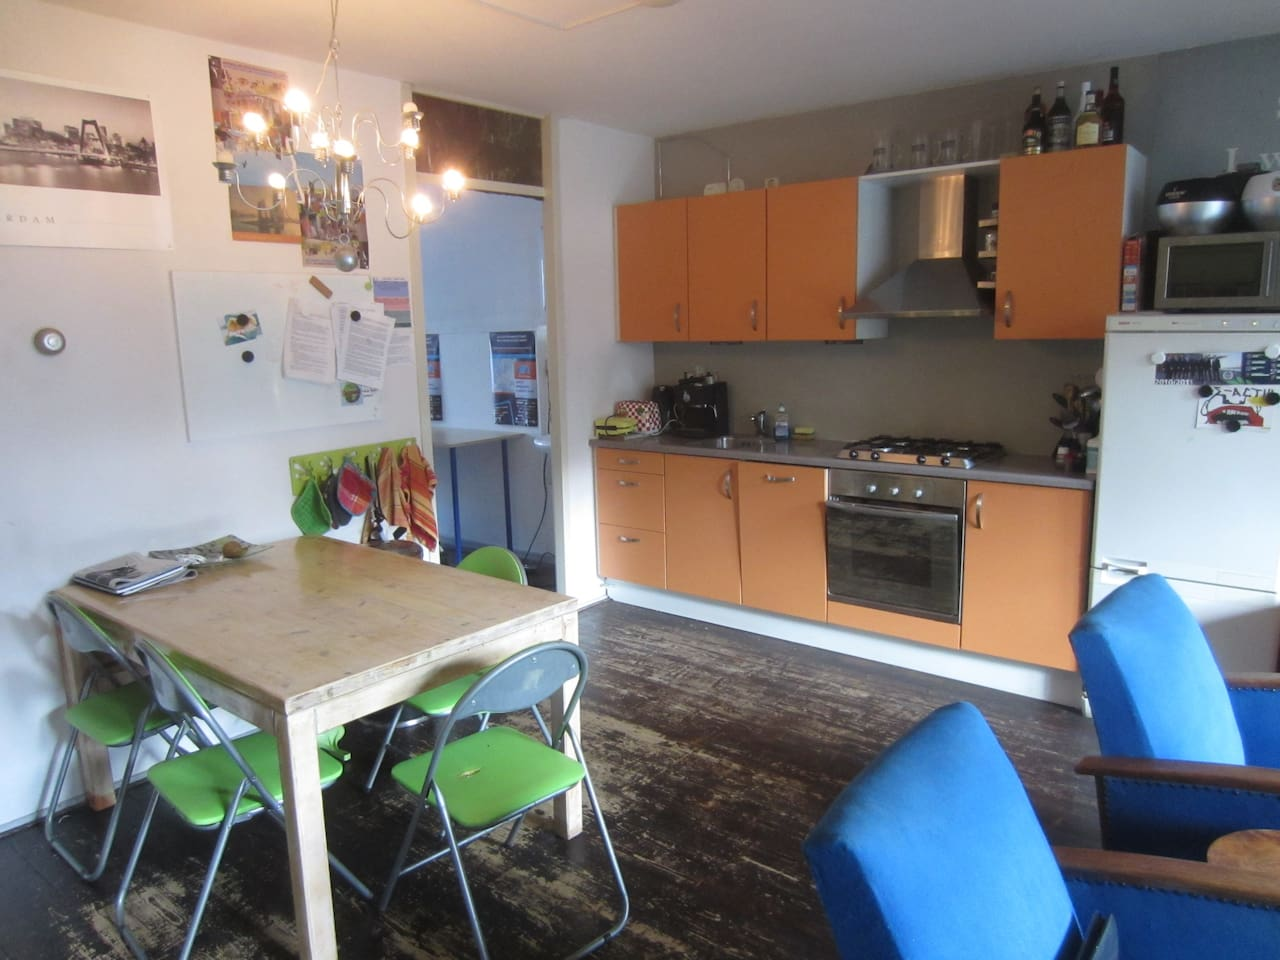 The kitchen and living room (the blue chairs are now replaced by 1 black one).